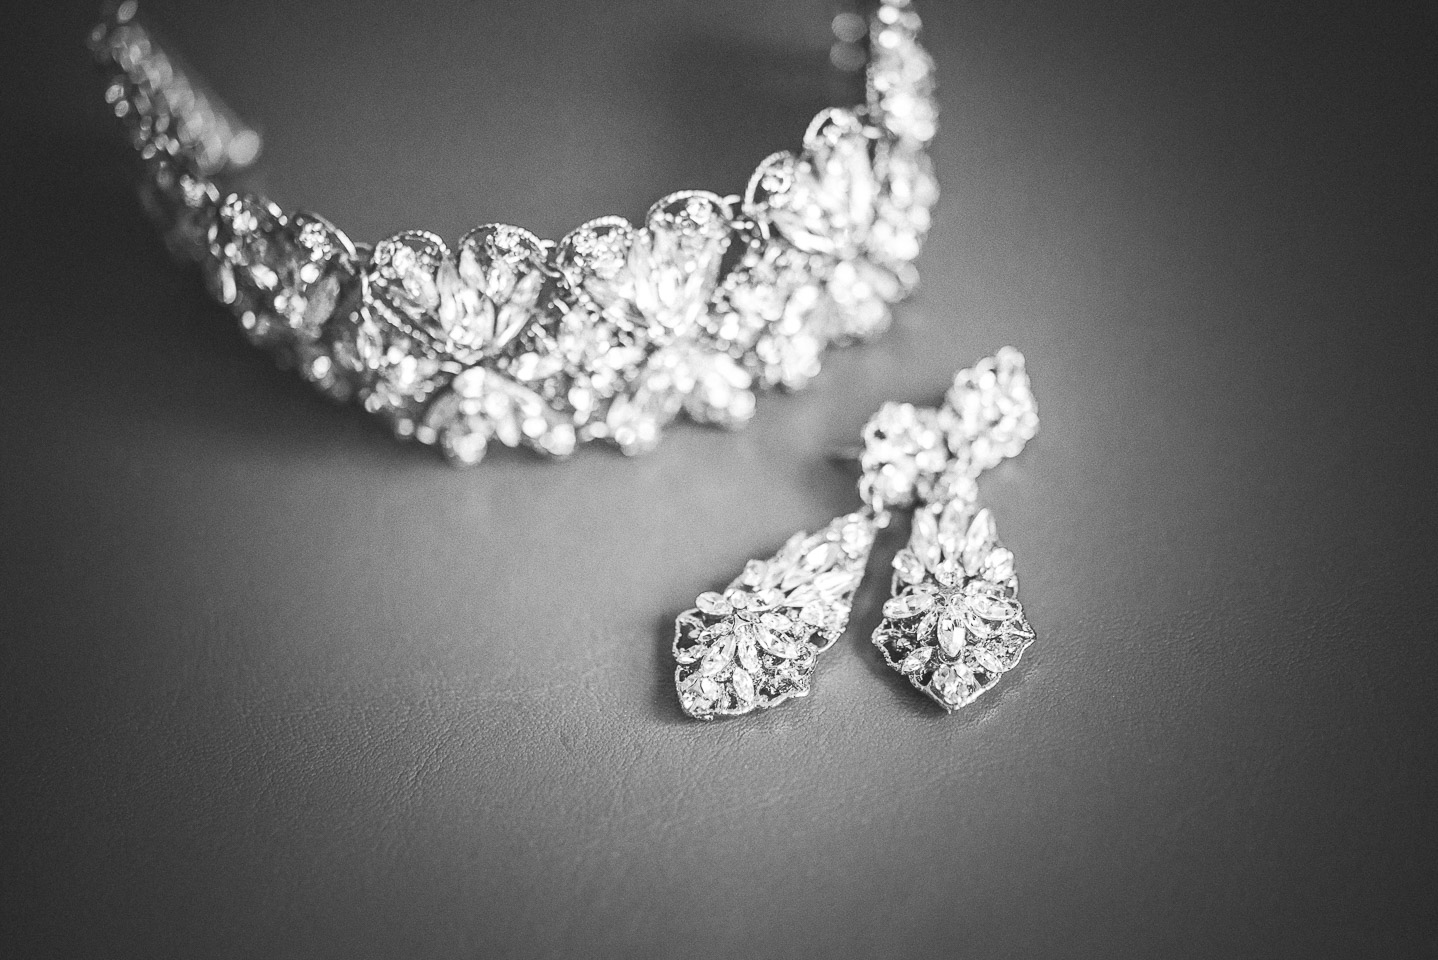 NH Wedding Photography: bride's jewelry